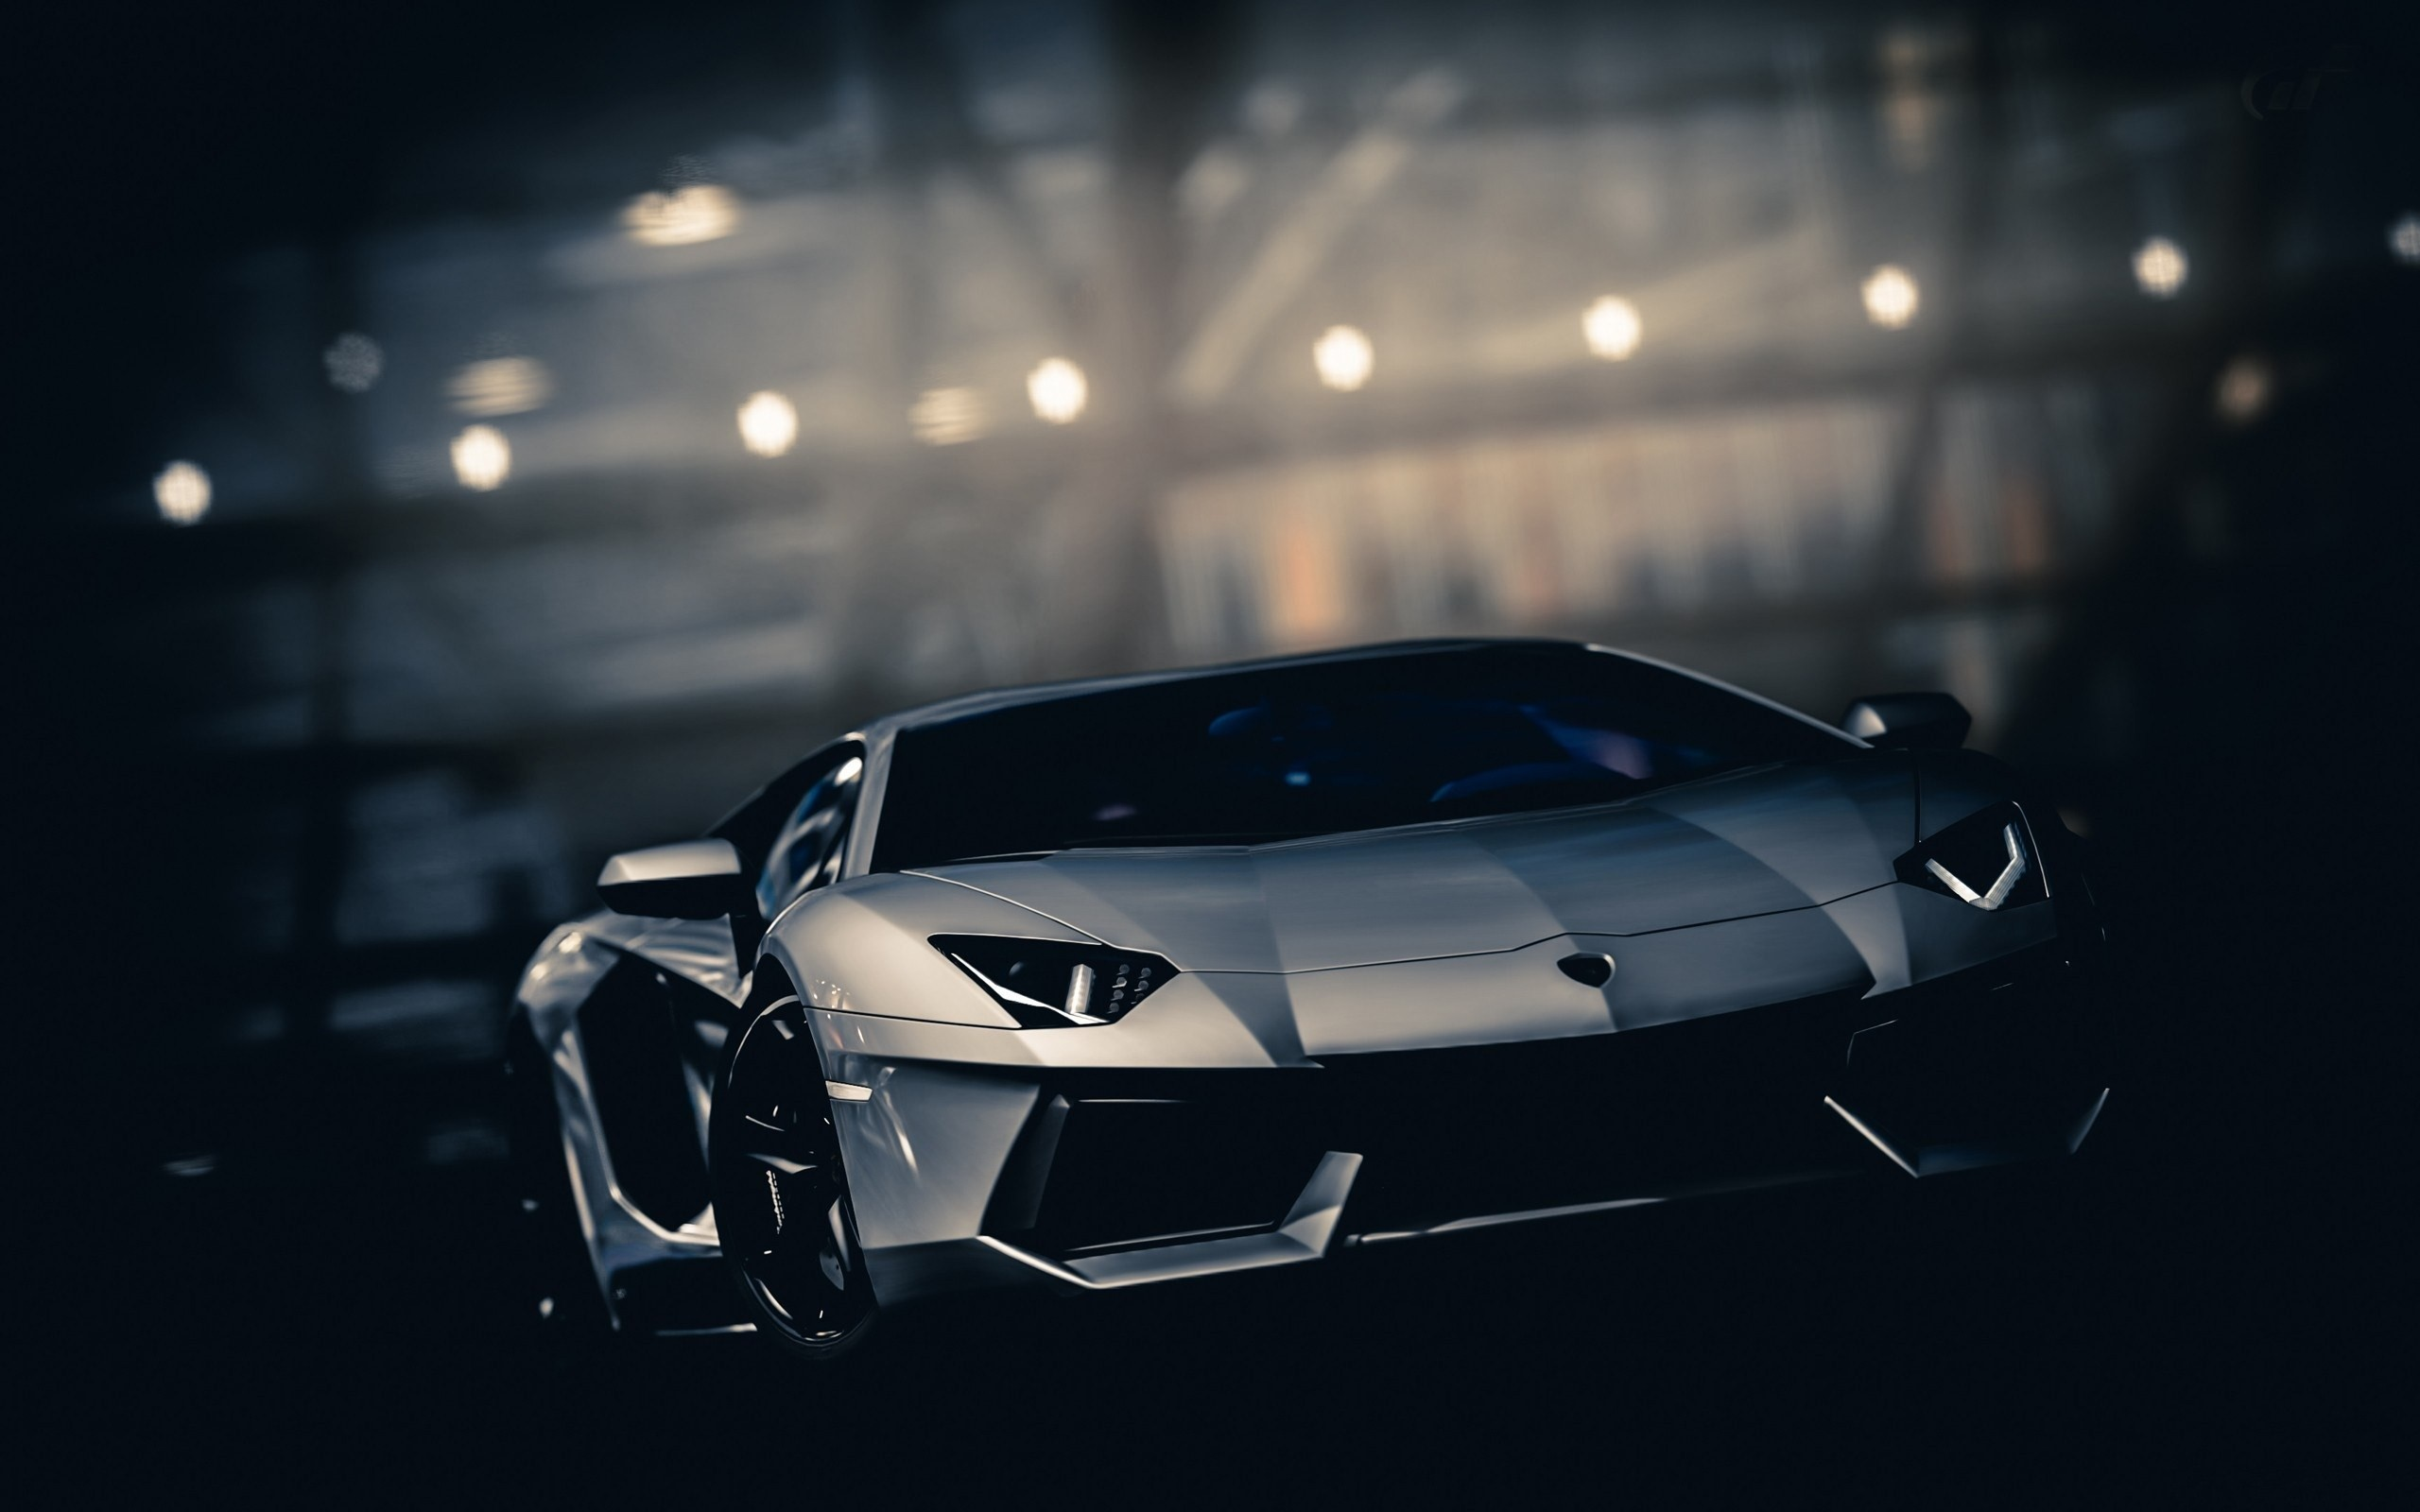 Wallpapers Of Lamborghini Car 73 Images